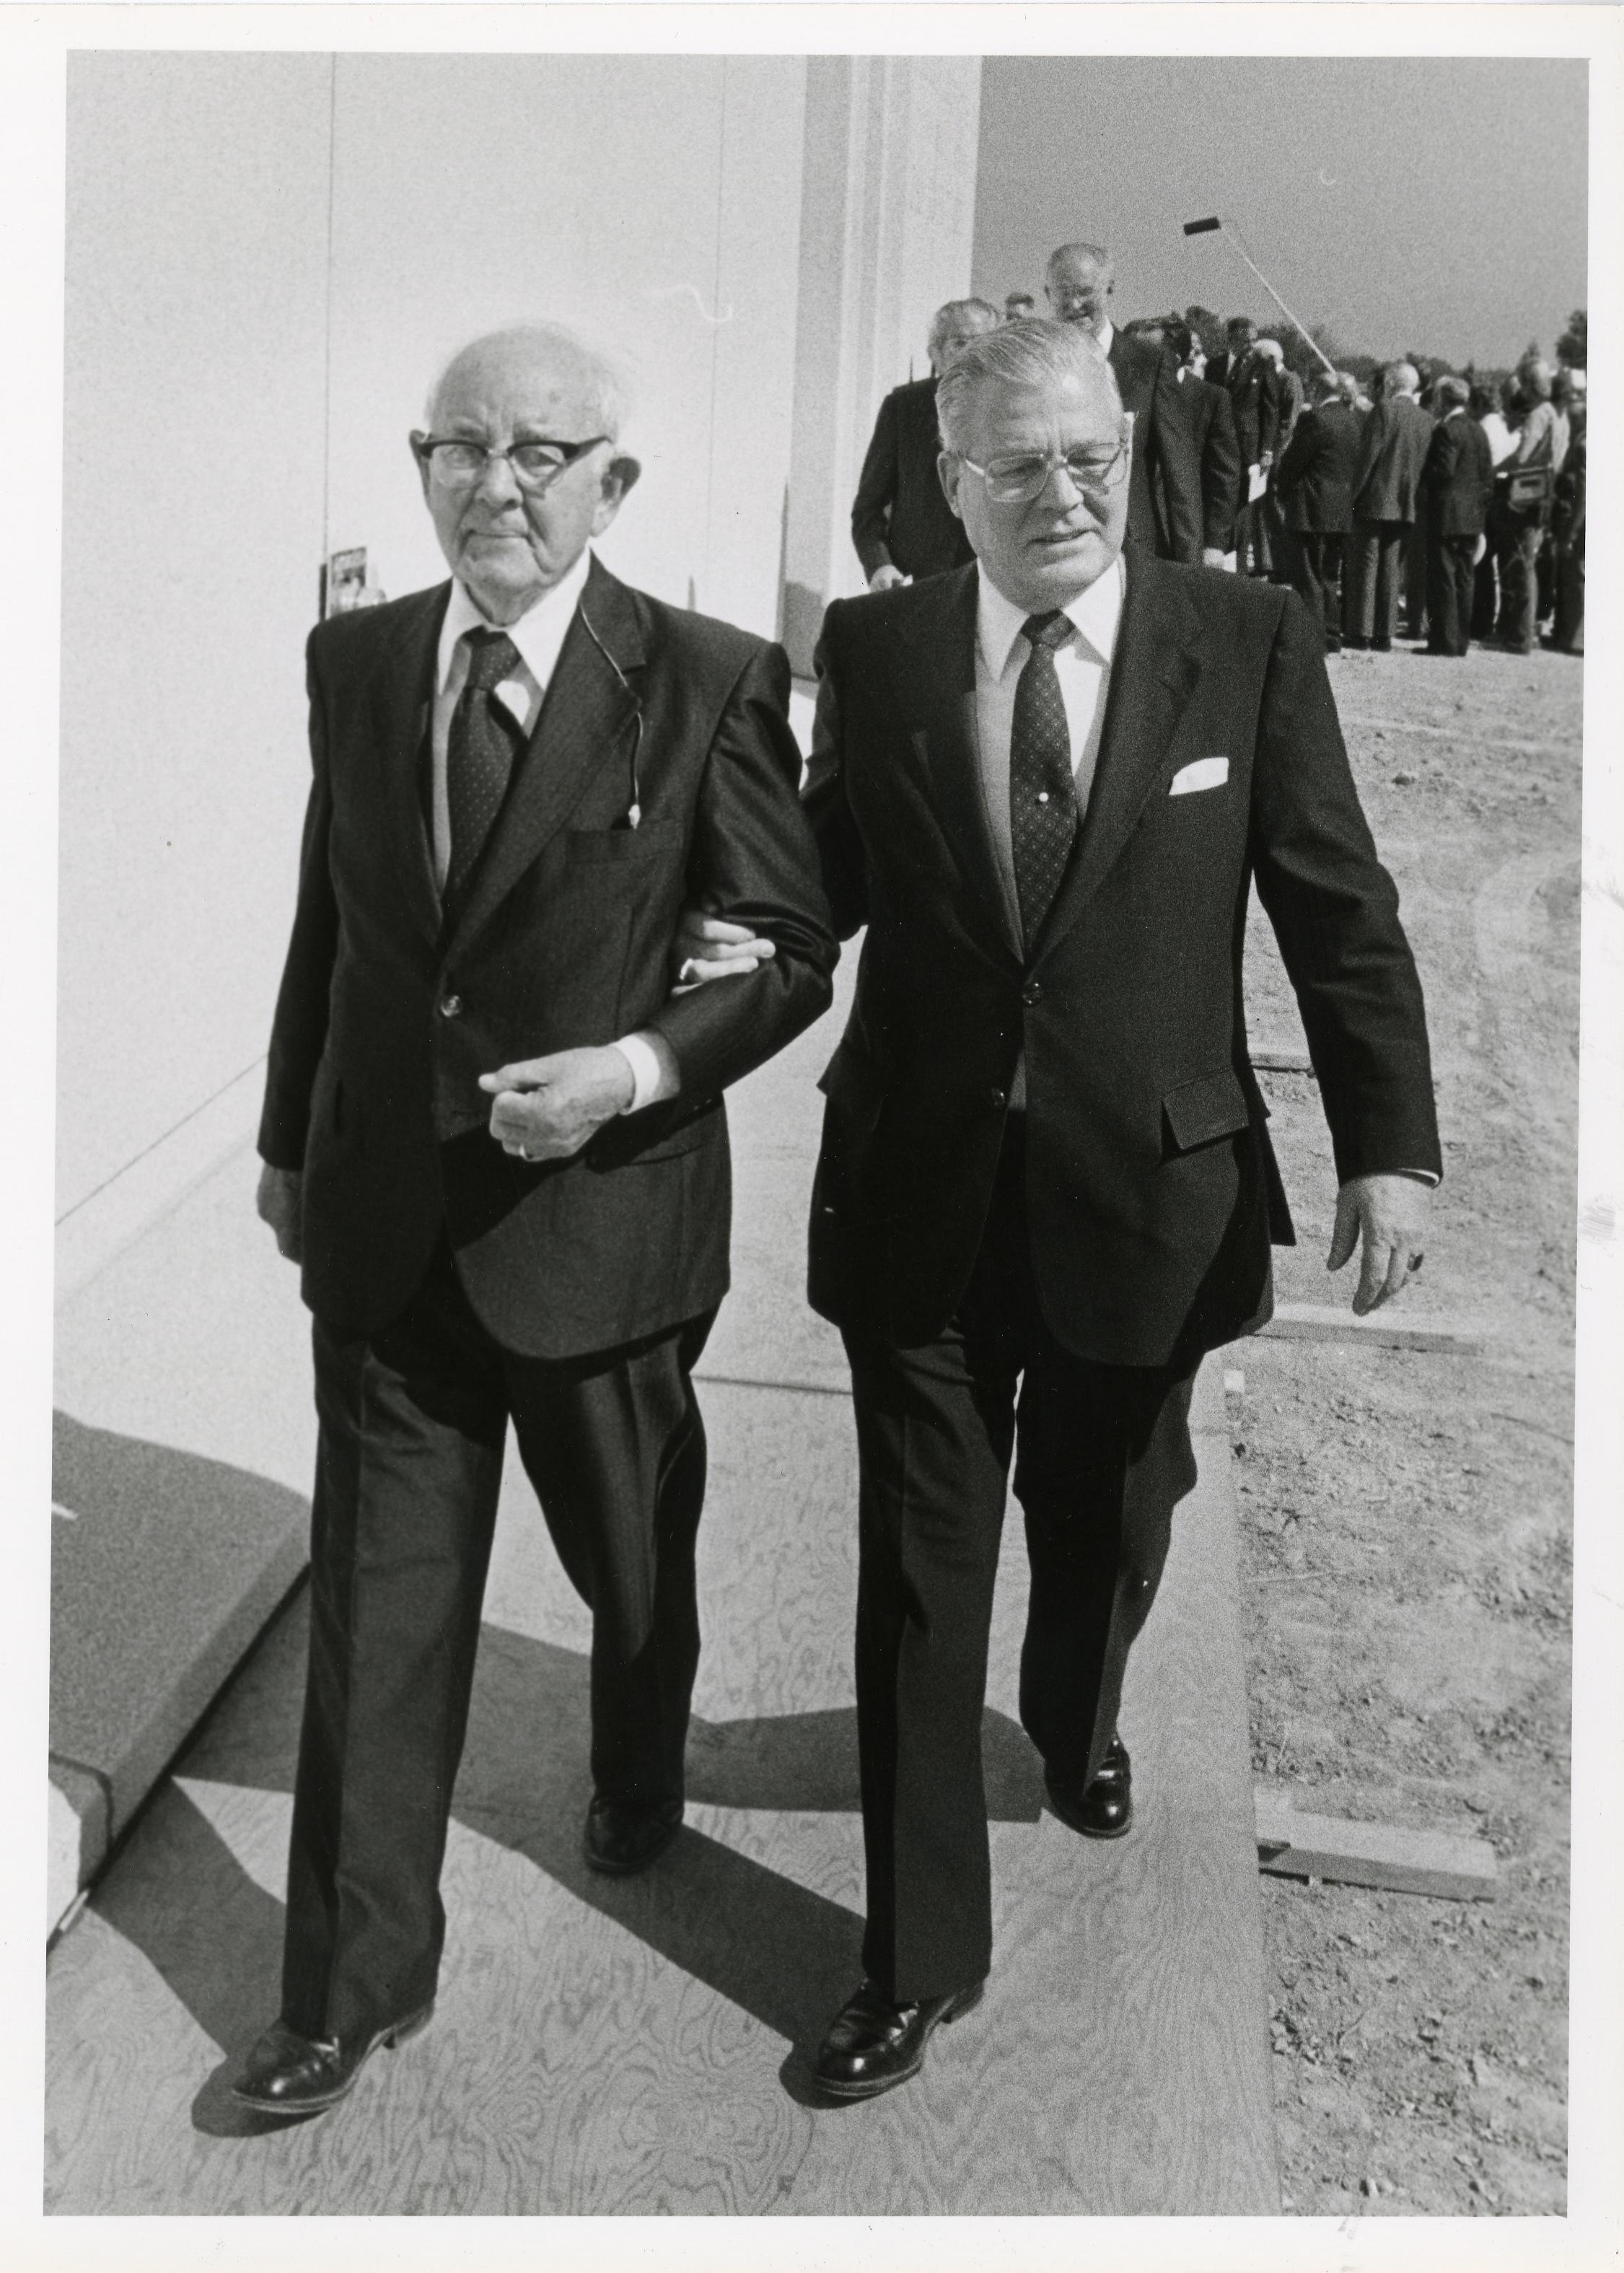 Spencer W. Kimball, president of the Church is being escorted by his secretary D. Arthur Haycock for the dedication of the Jordan River Utah Temple in 1981. ©ALL RIGHTS RESERVED.